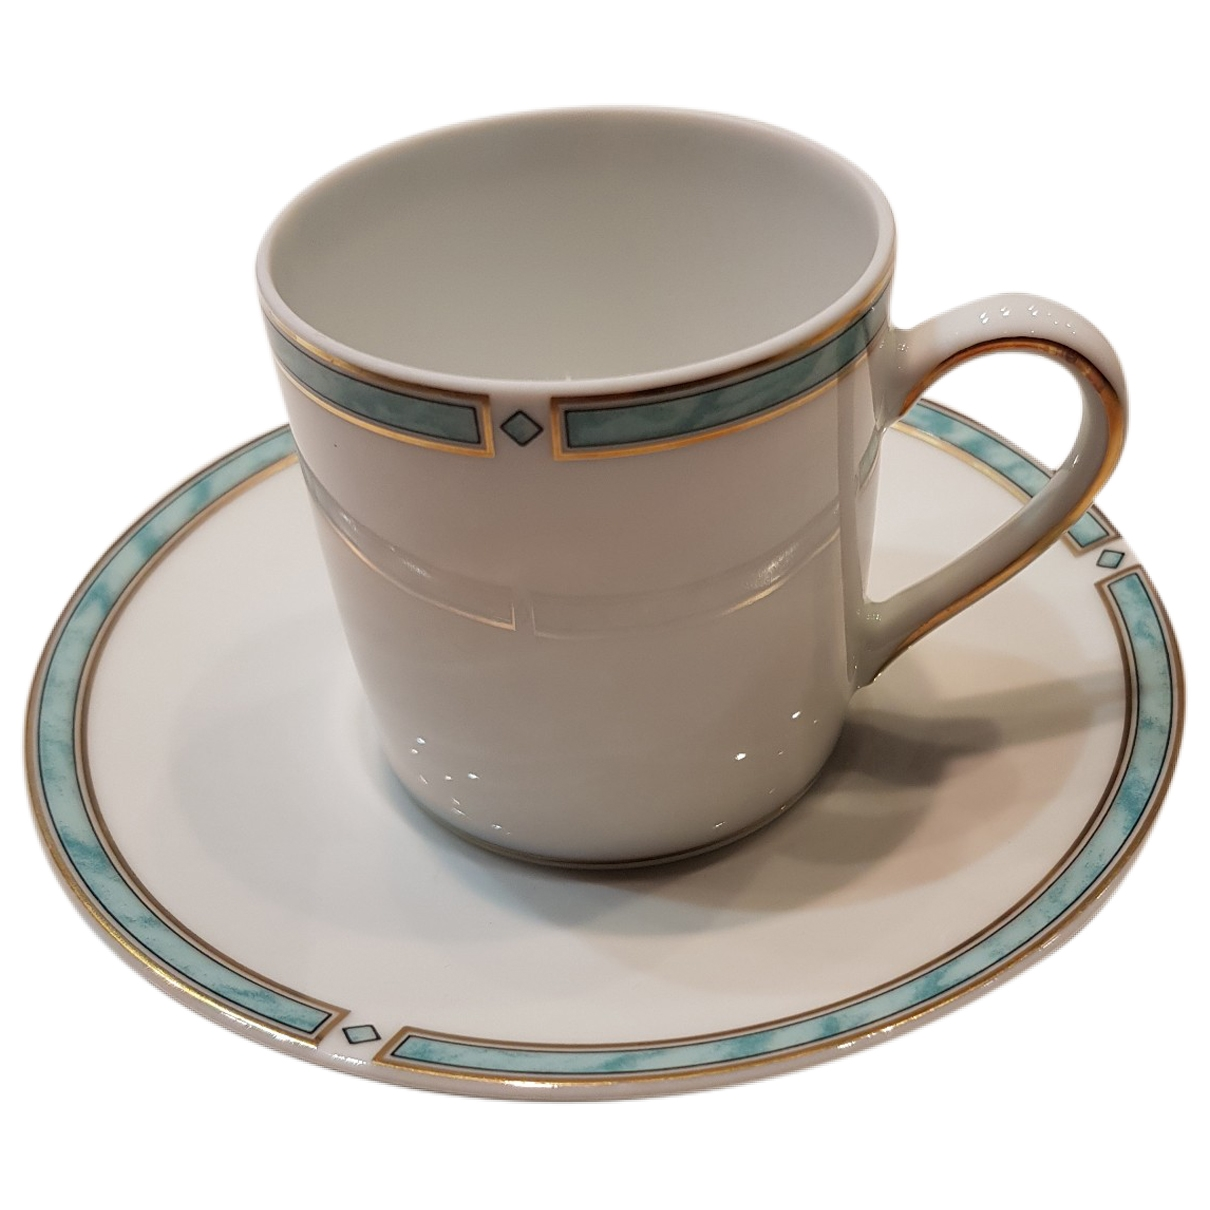 Bernardaud - Arts de la table   pour lifestyle en porcelaine - blanc